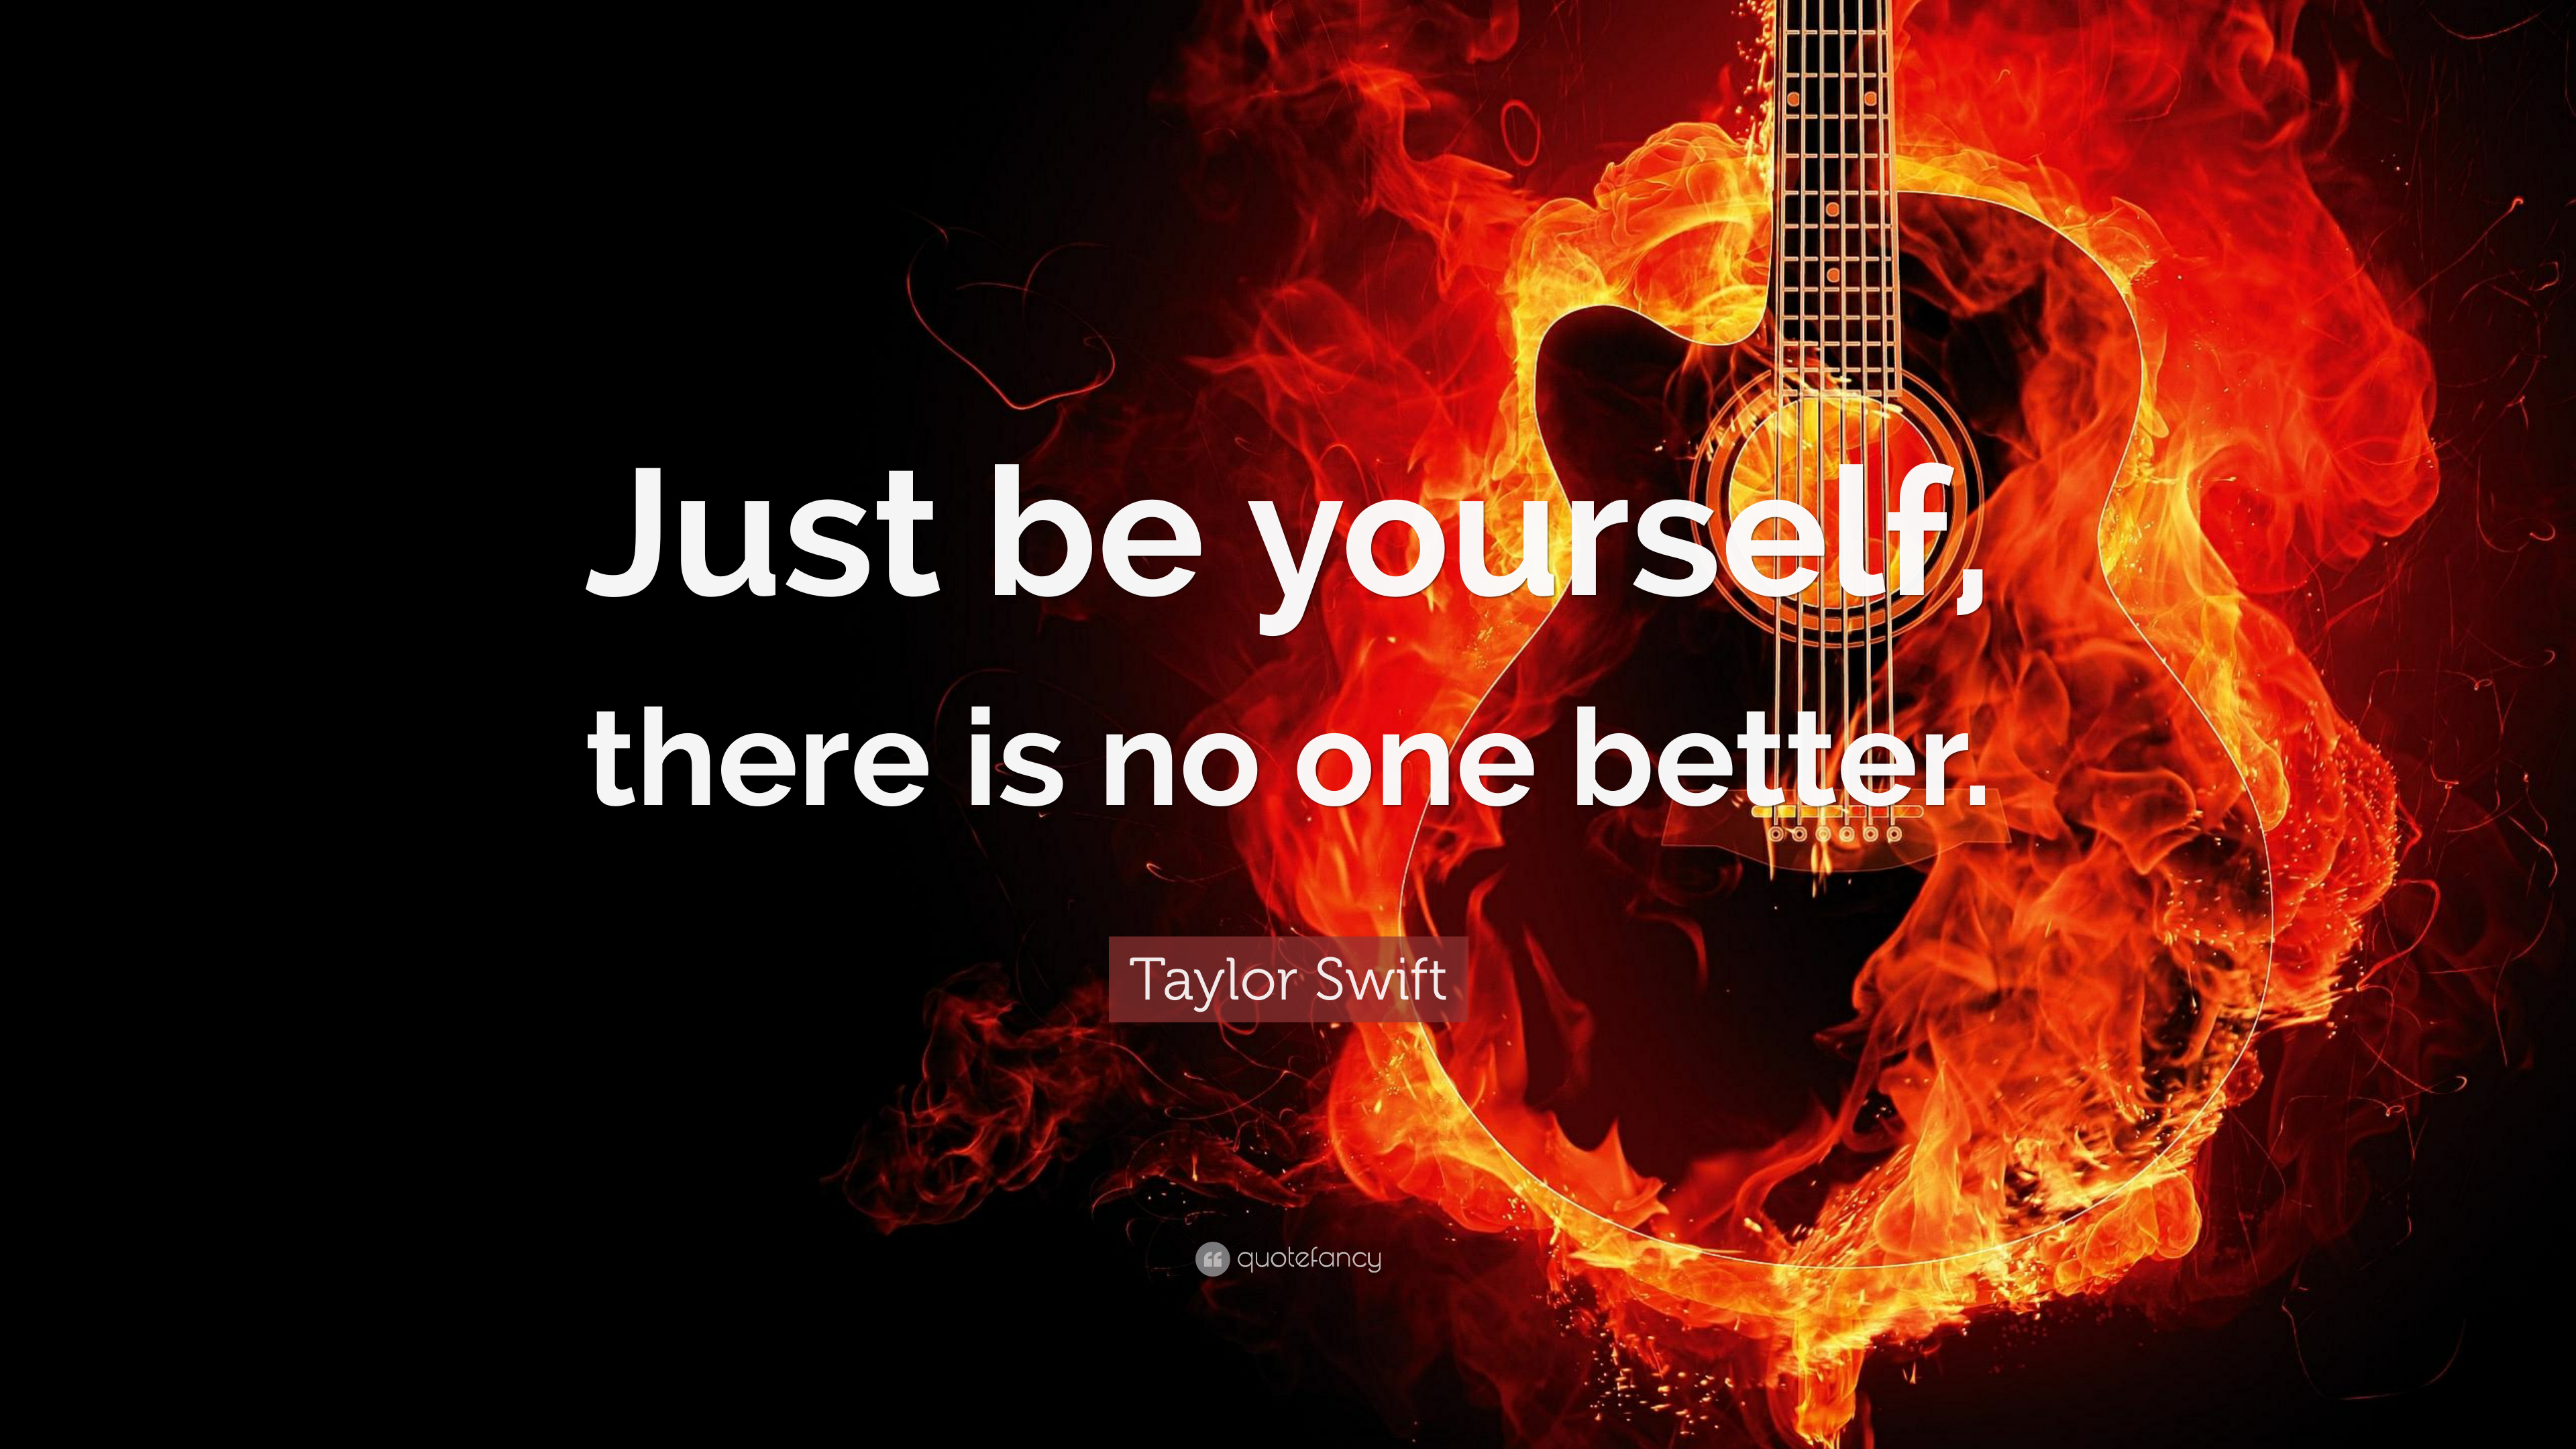 6361204-Taylor-Swift-Quote-Just-be-yourself-there-is-no-one-better.jpg